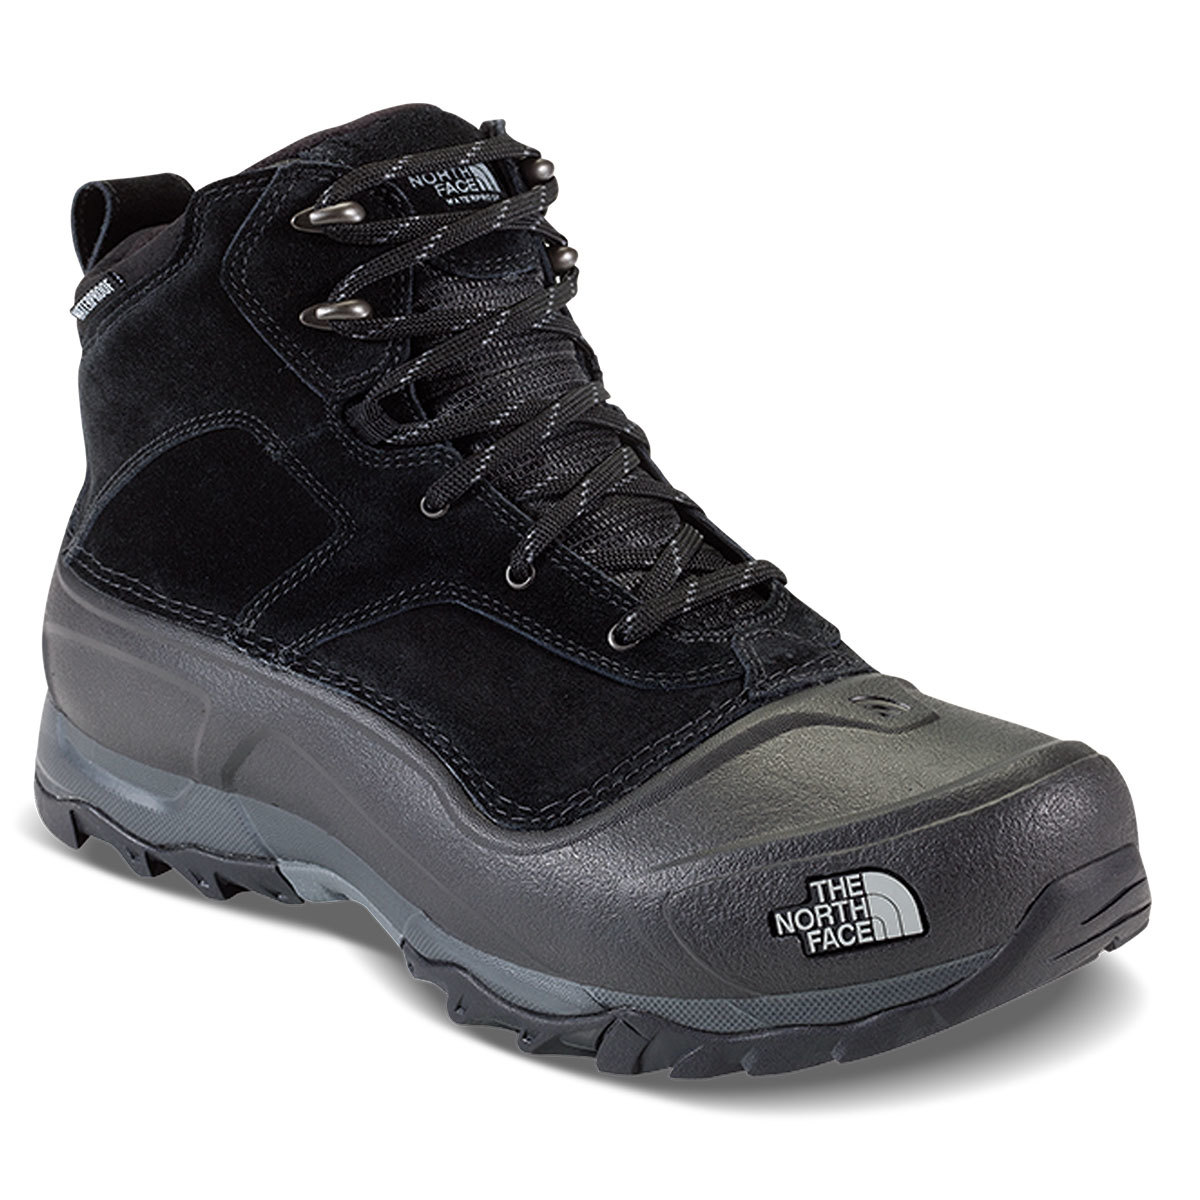 THE NORTH FACE Men's Snowfuse Mid